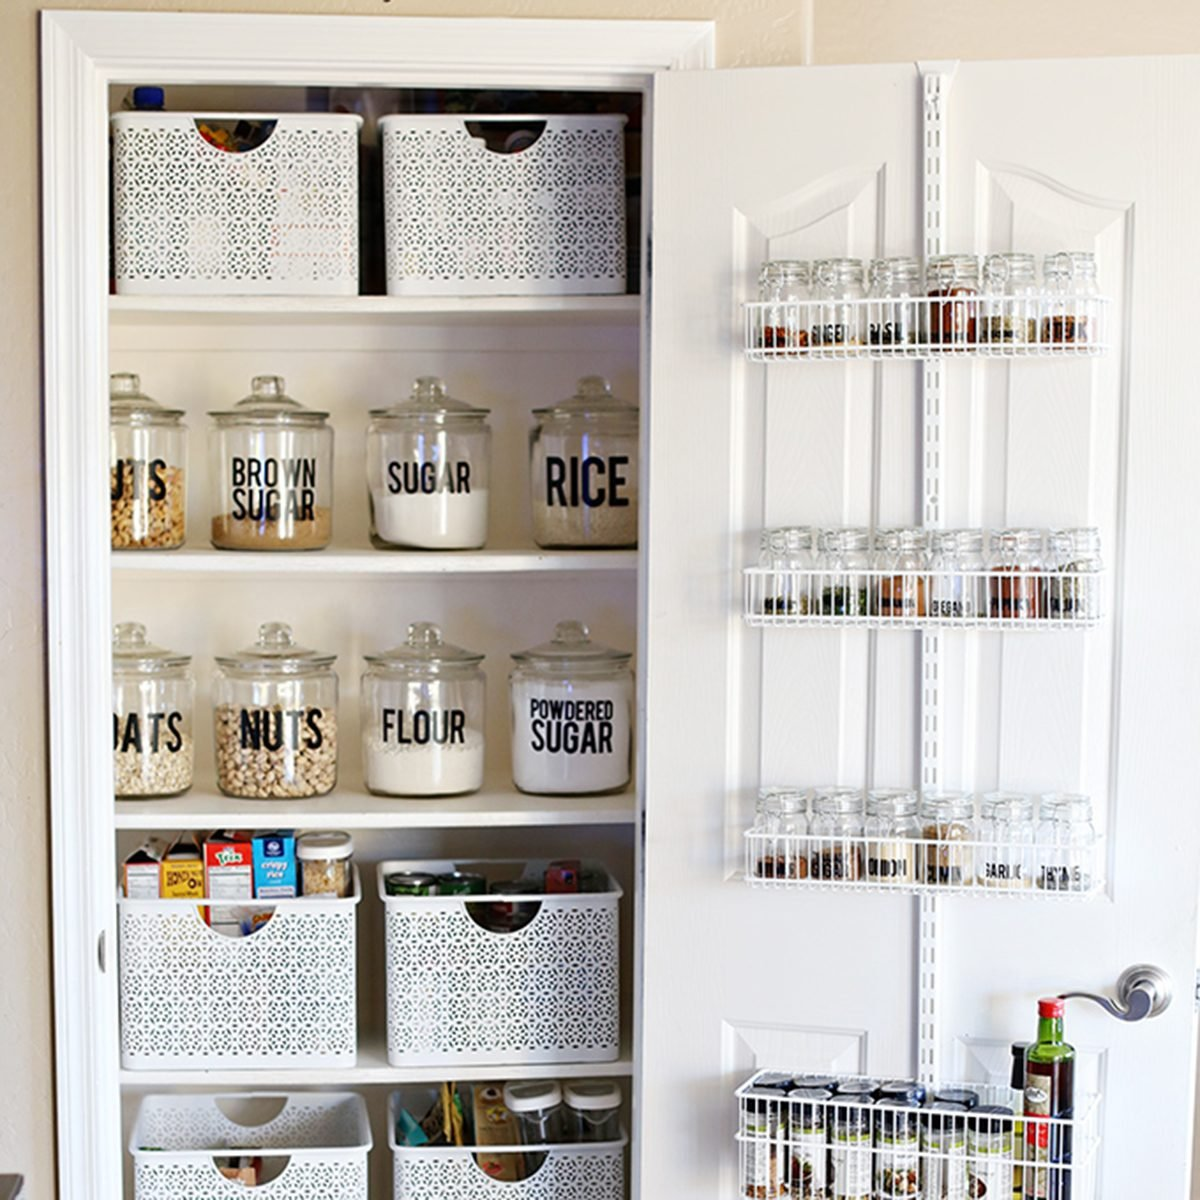 14 Easy Pantry Organization Tips From The Experts